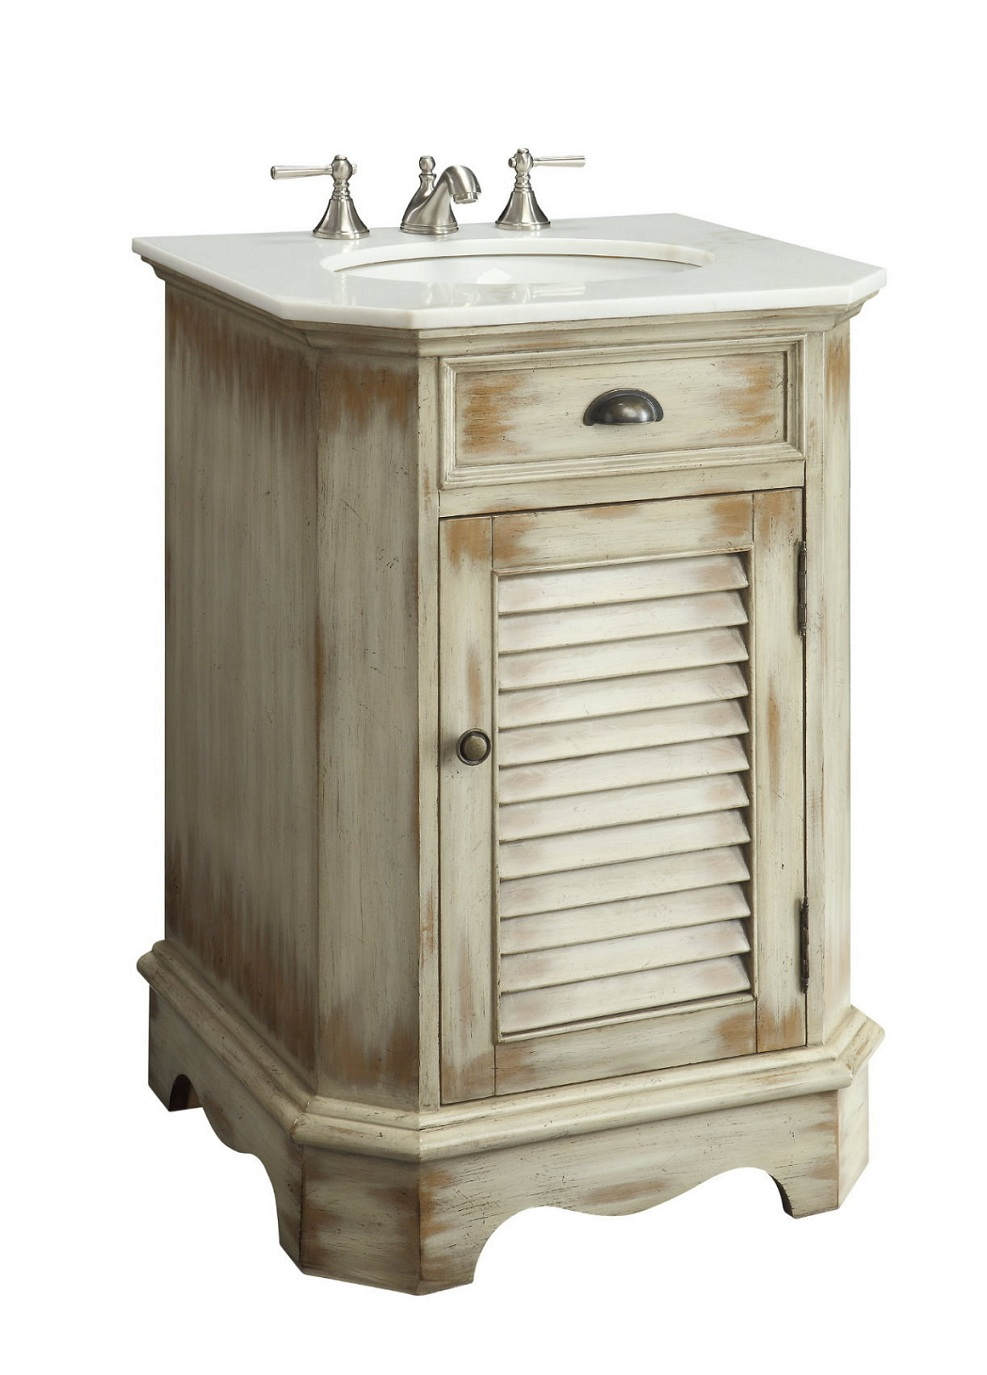 24 inch Adelina Cottage Antique Finish Bathroom Vanity